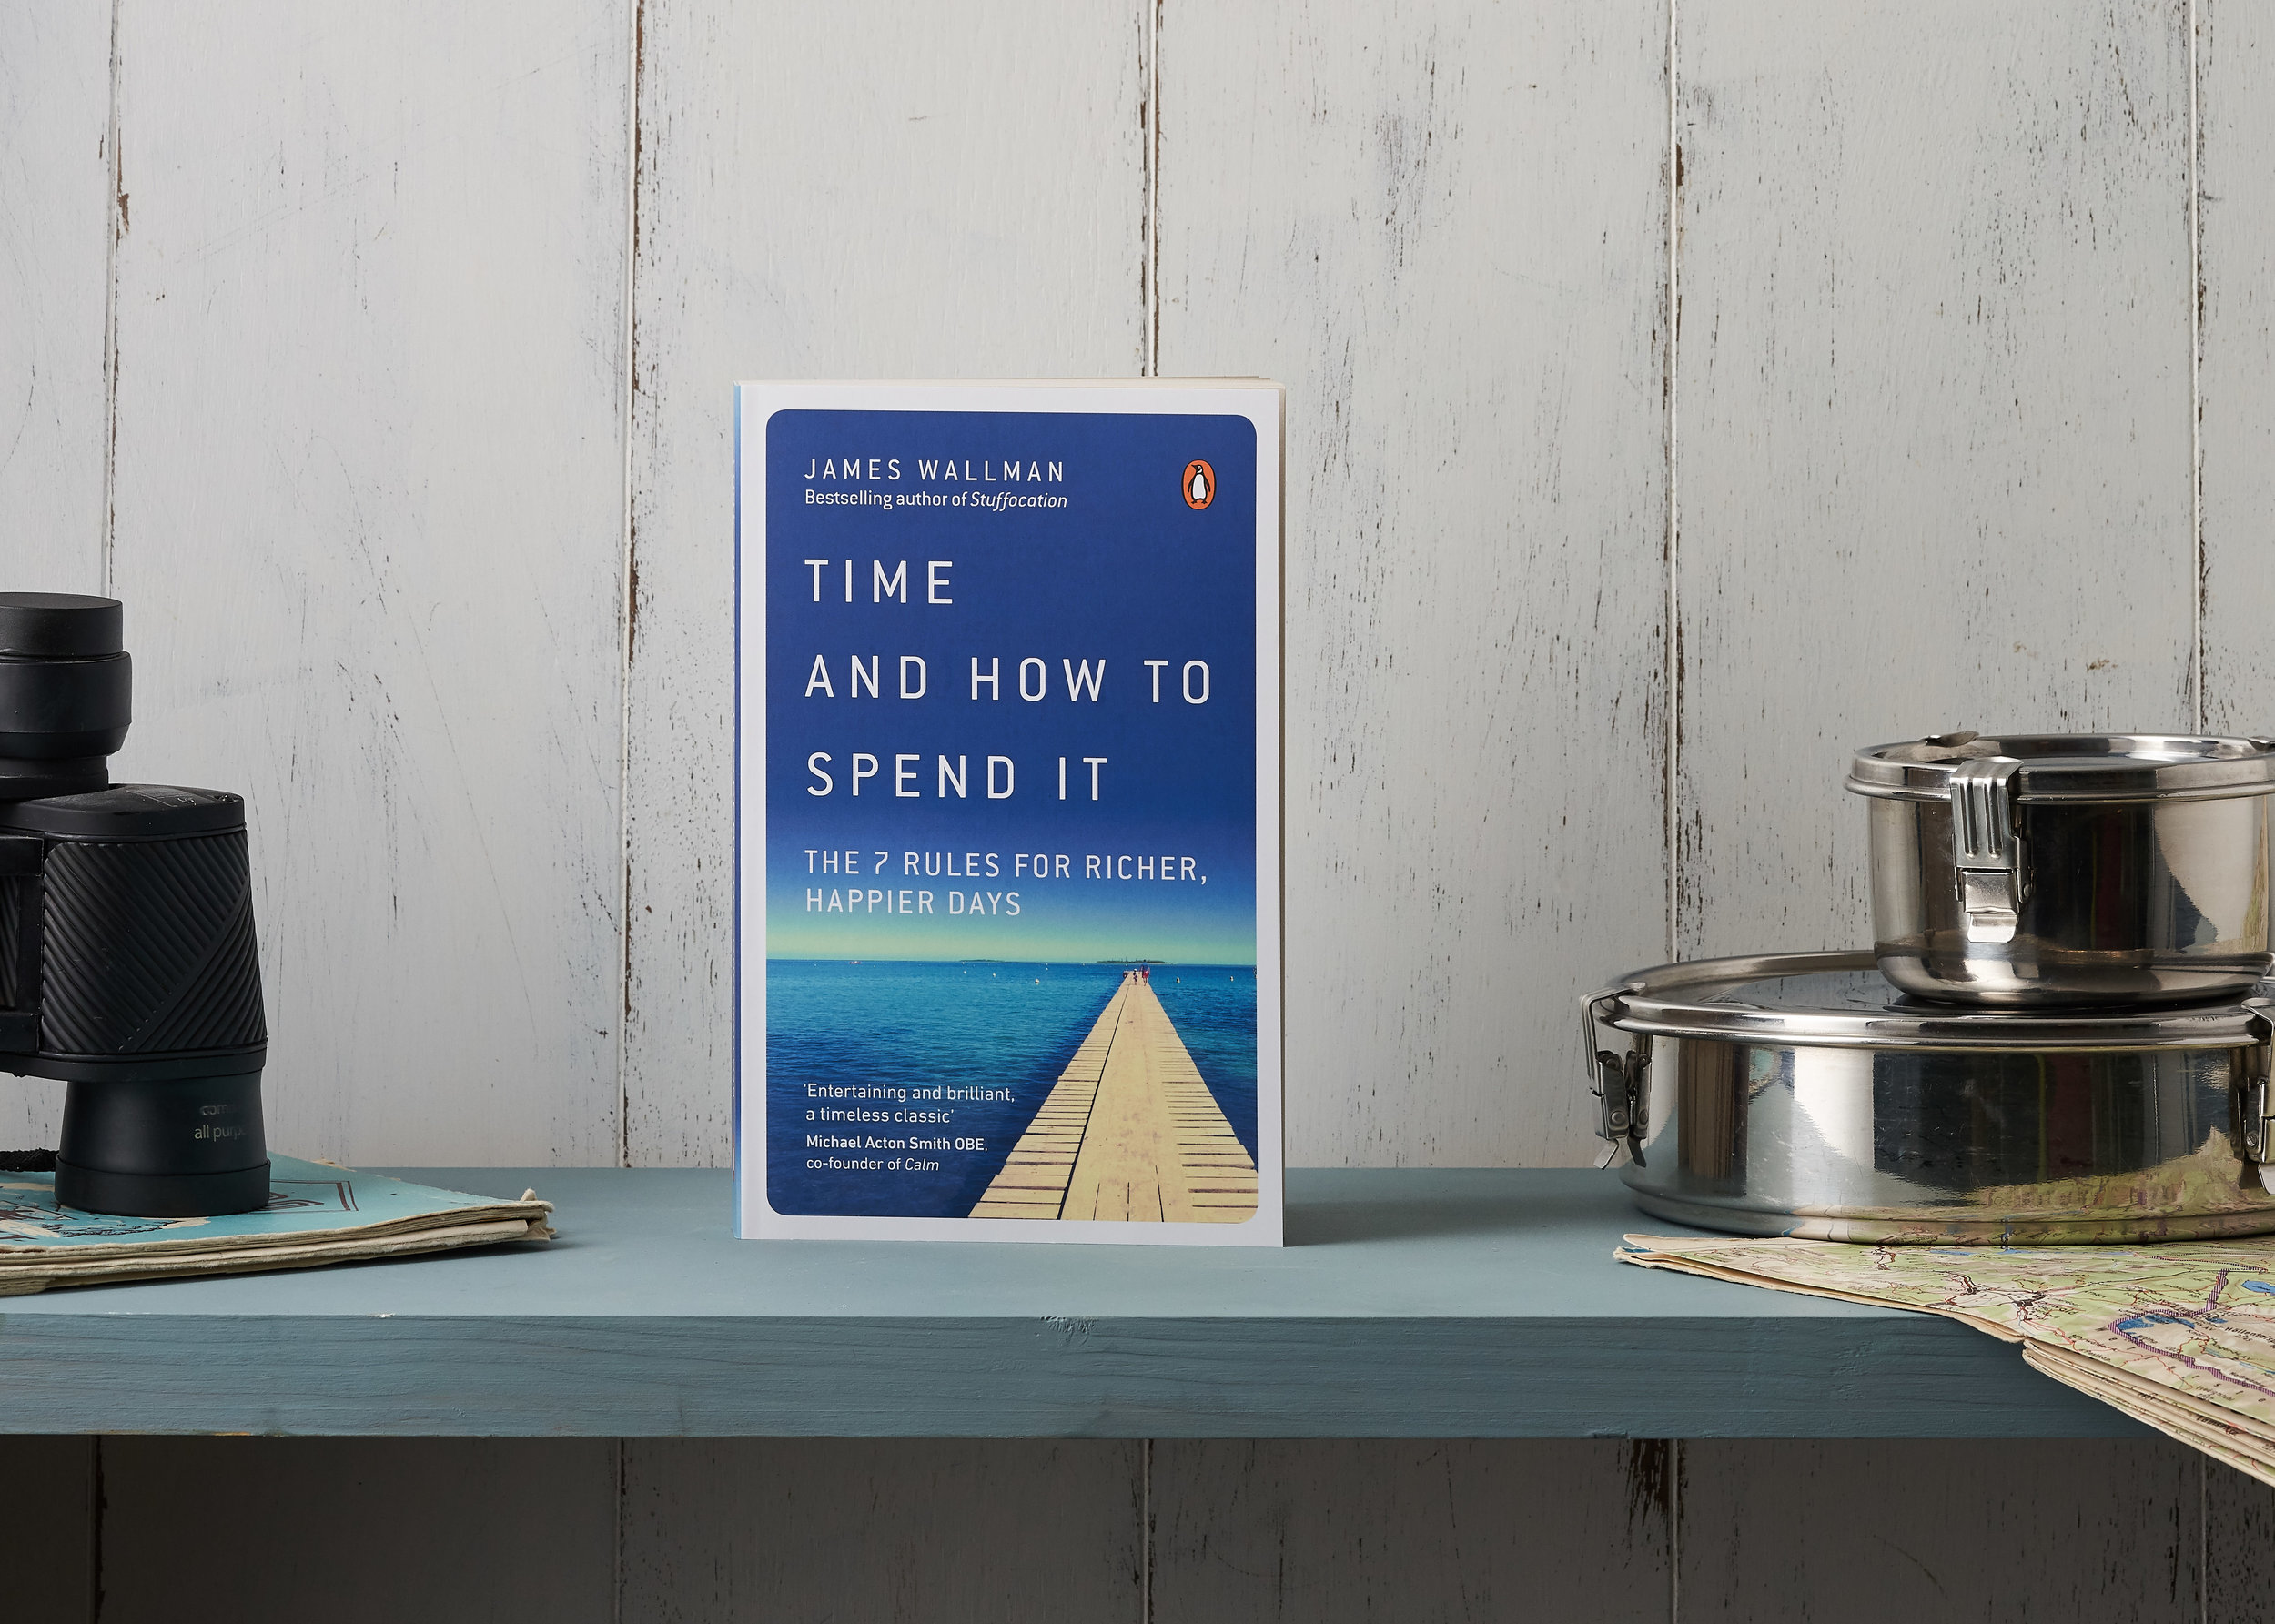 Resources - To help you design your time better.My aim with Time And How To Spend It is not only to entertain, but also to inspire and inform. The book contains many science-based frameworks for thinking about, analysing, planning, and designing your time so you live richer, happier days.